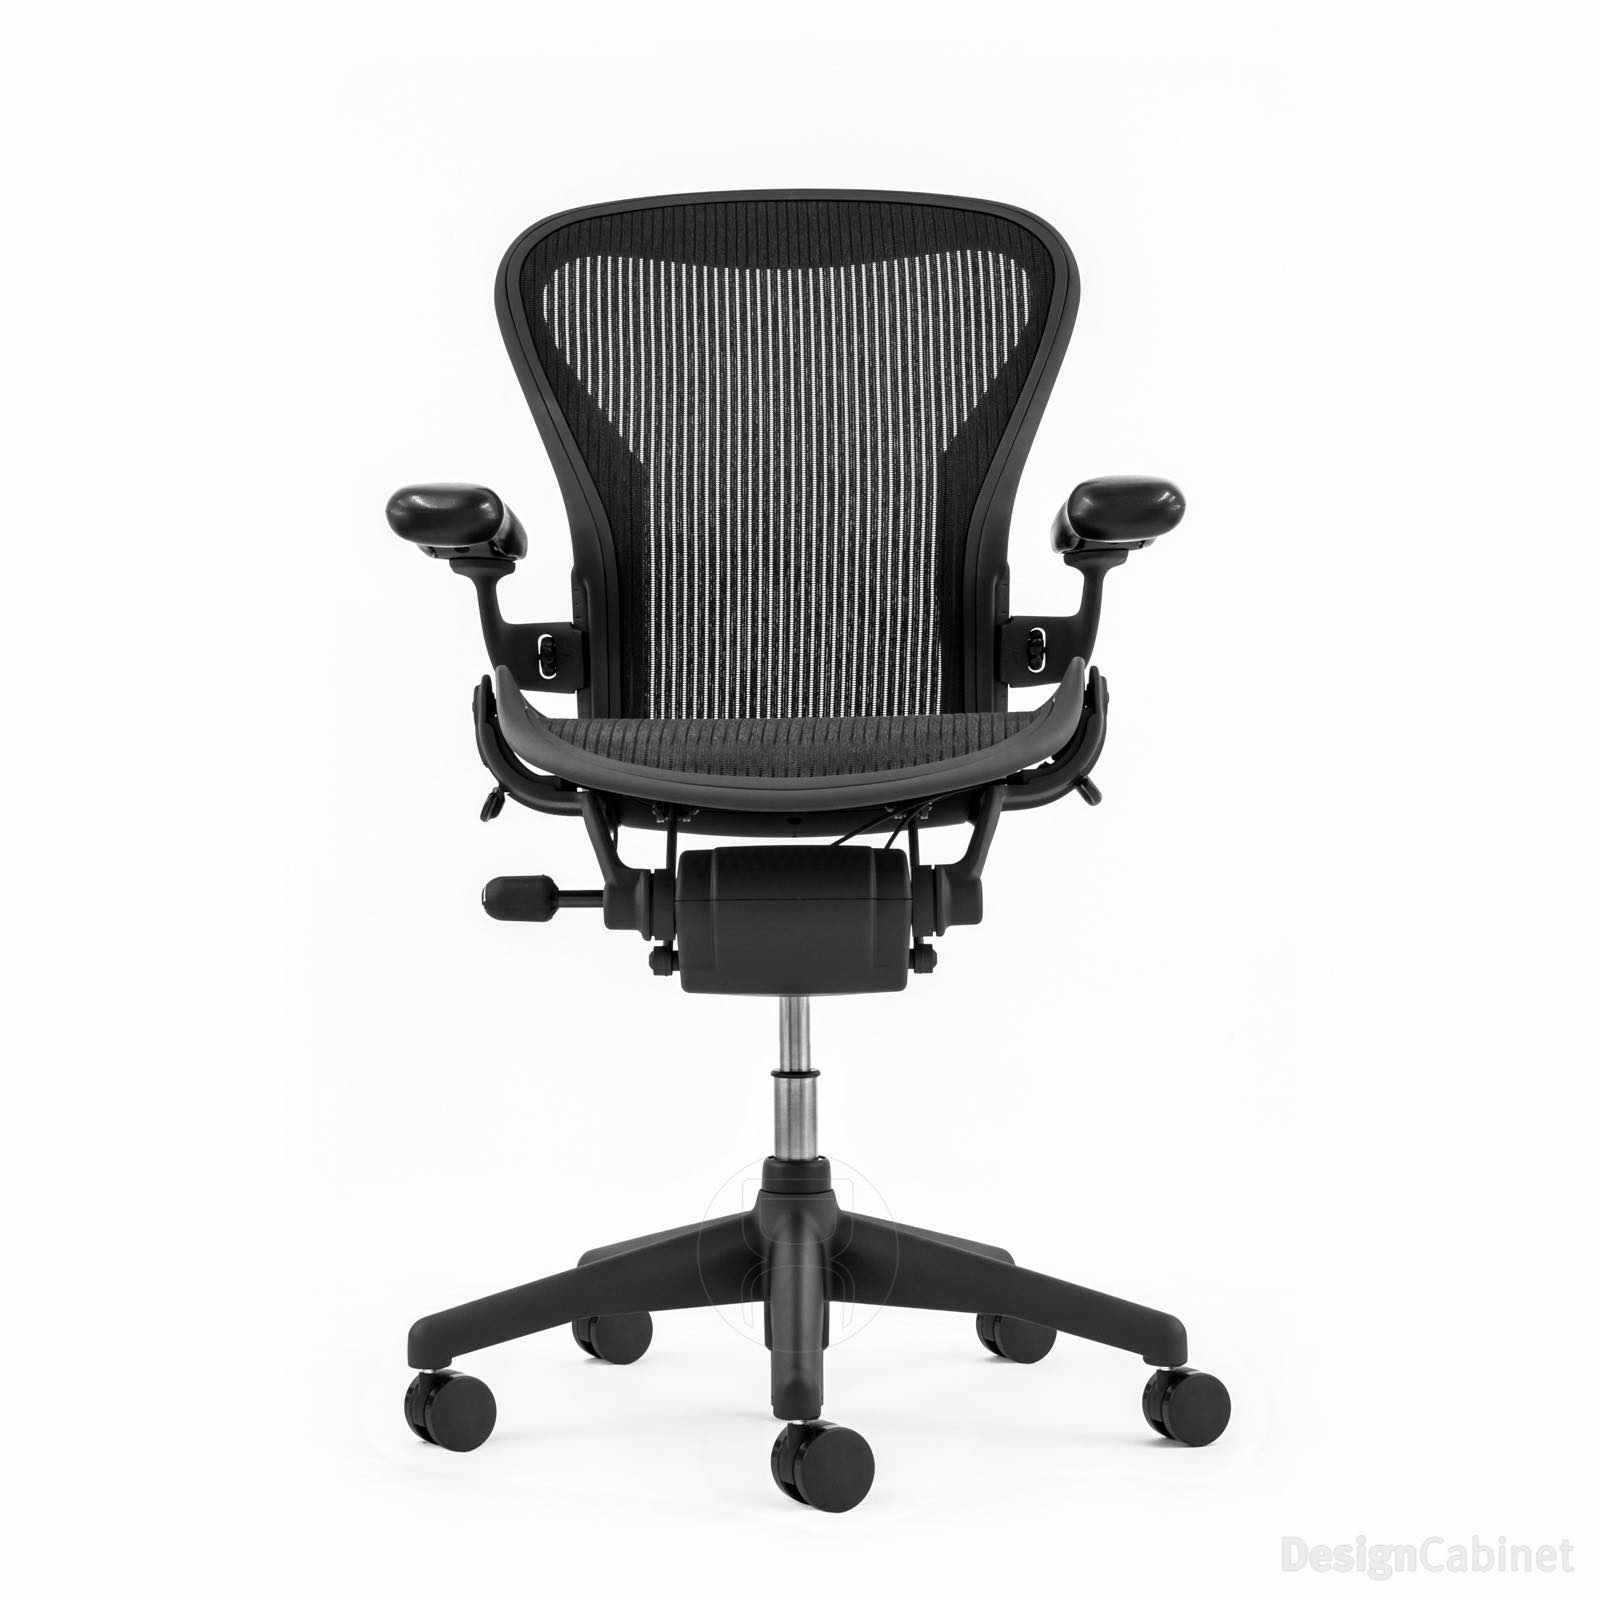 Herman Miller Aeron Chair – Size A Aeron Chair